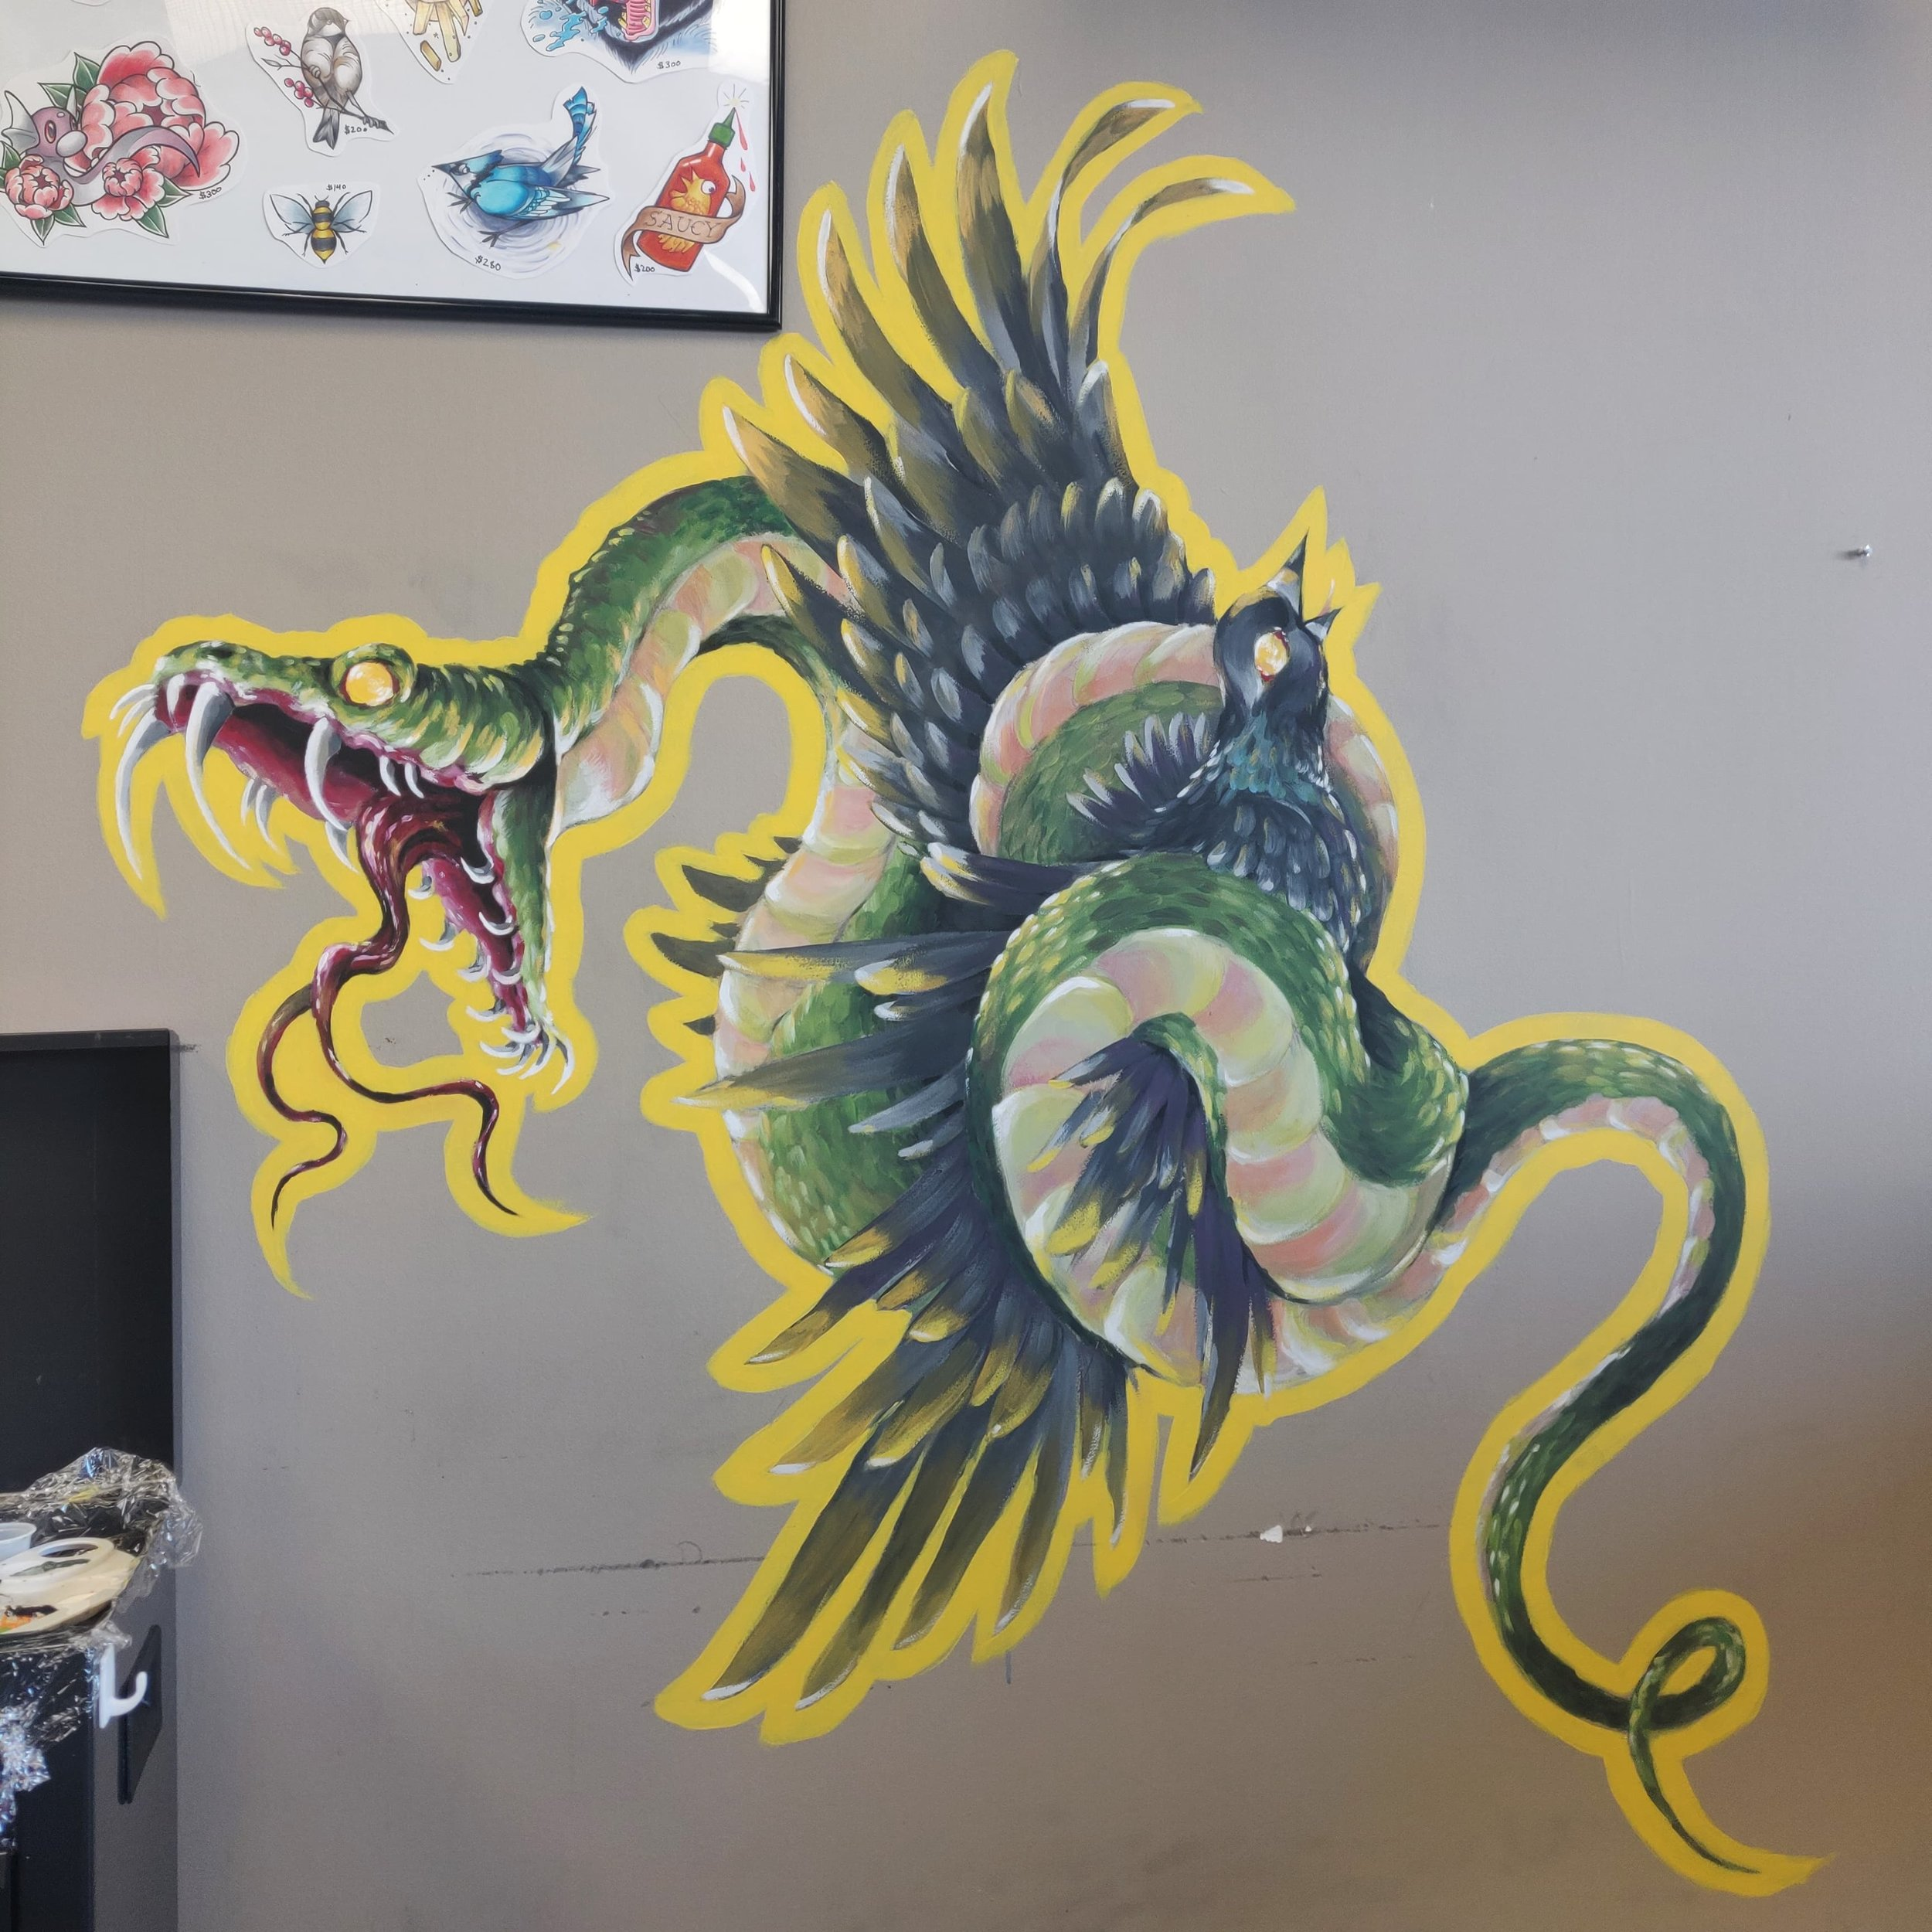 Mural   Craft paint  Mural created to liven up the workplace area.   © Copyright Camille Codling 2019